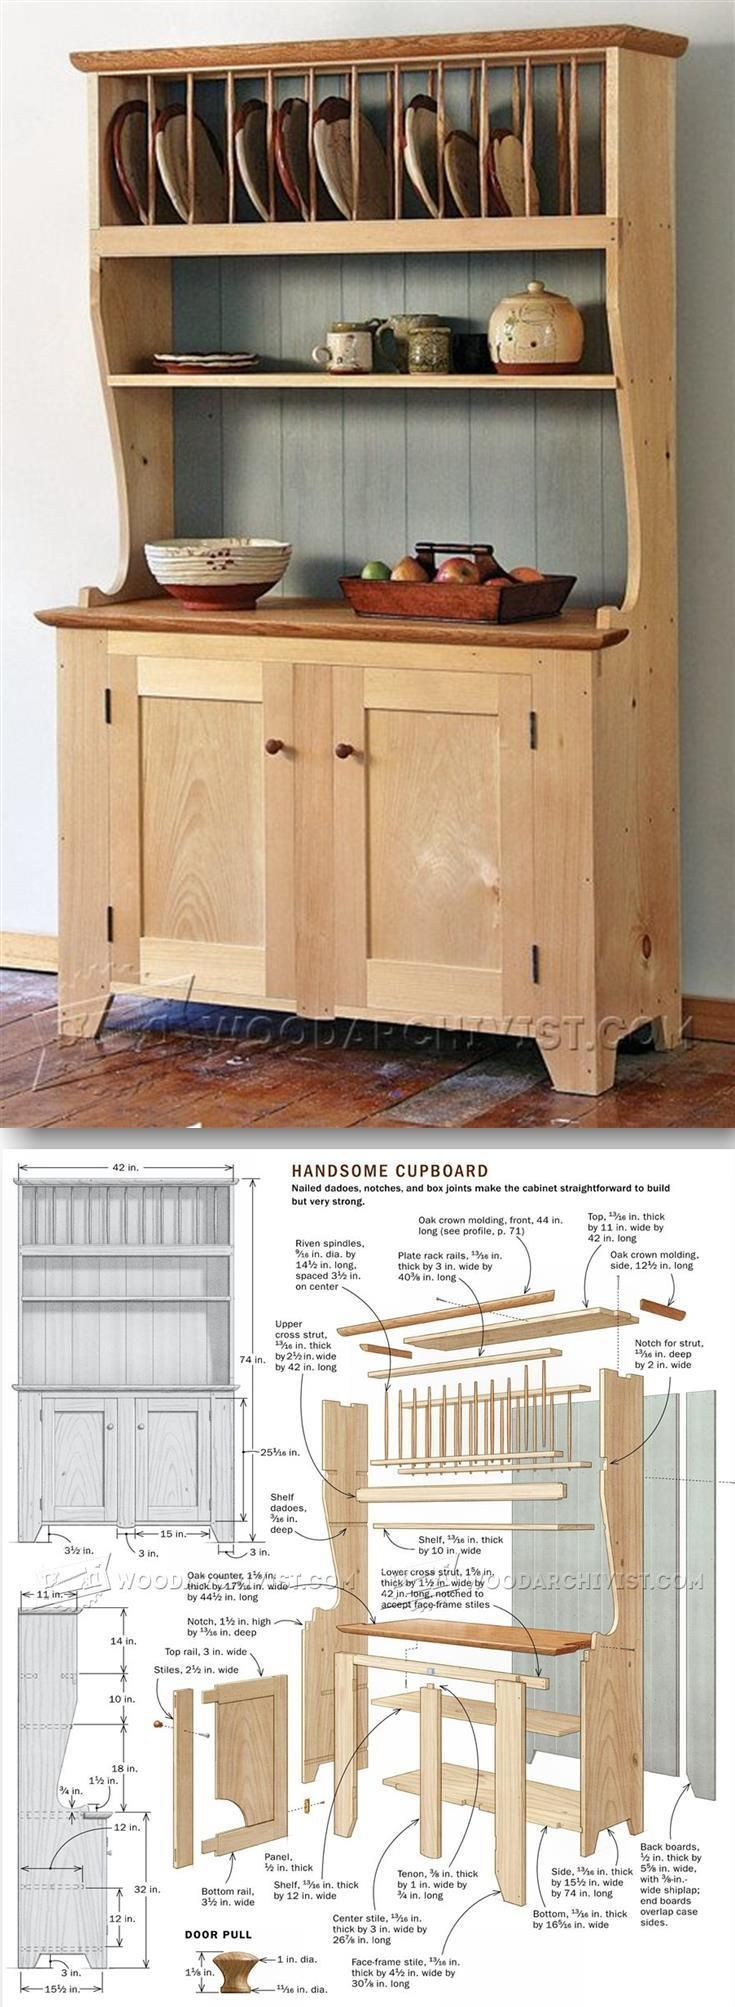 Cupboard Plans - Furniture Plans and Projects | http://WoodArchivist.com